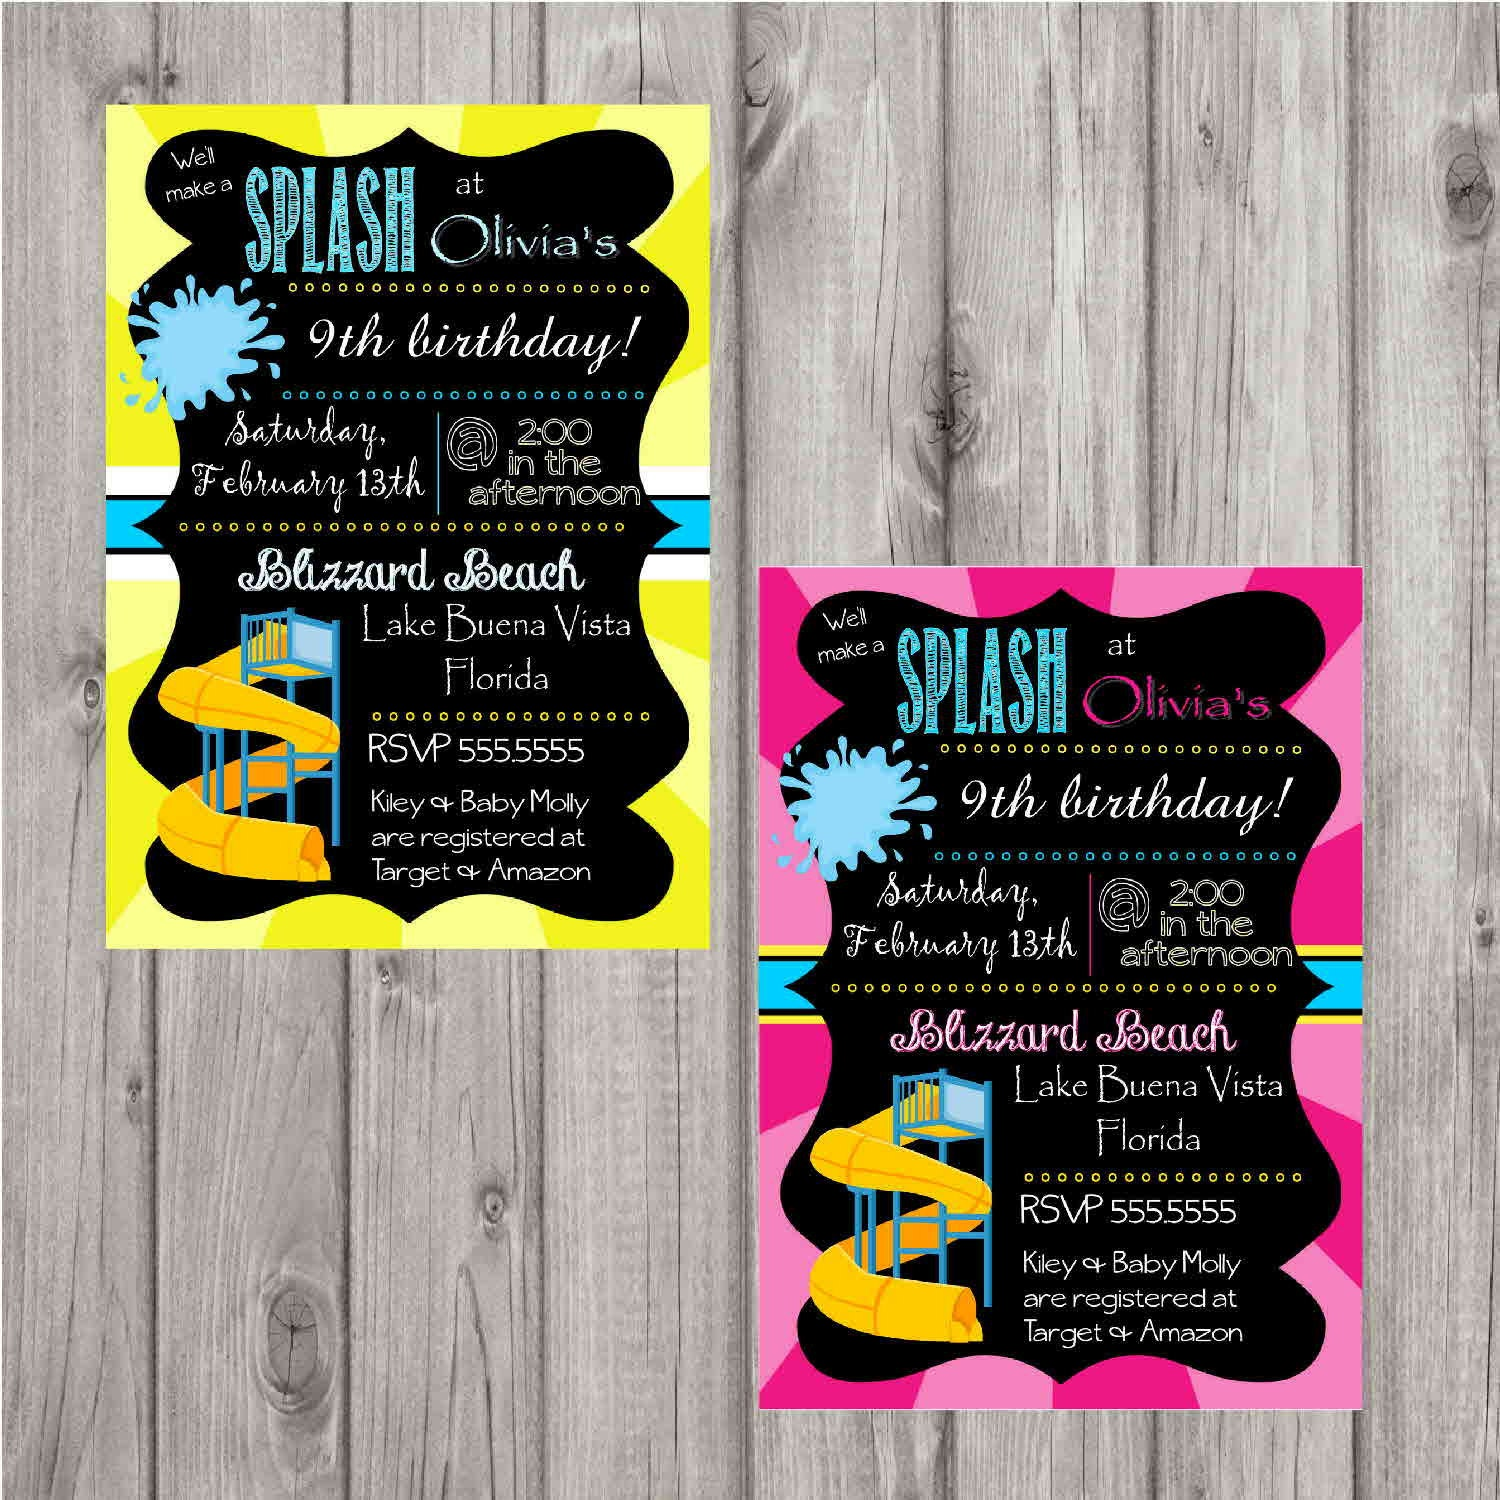 Digital water park chalkboard style birthday party invitation zoom monicamarmolfo Image collections